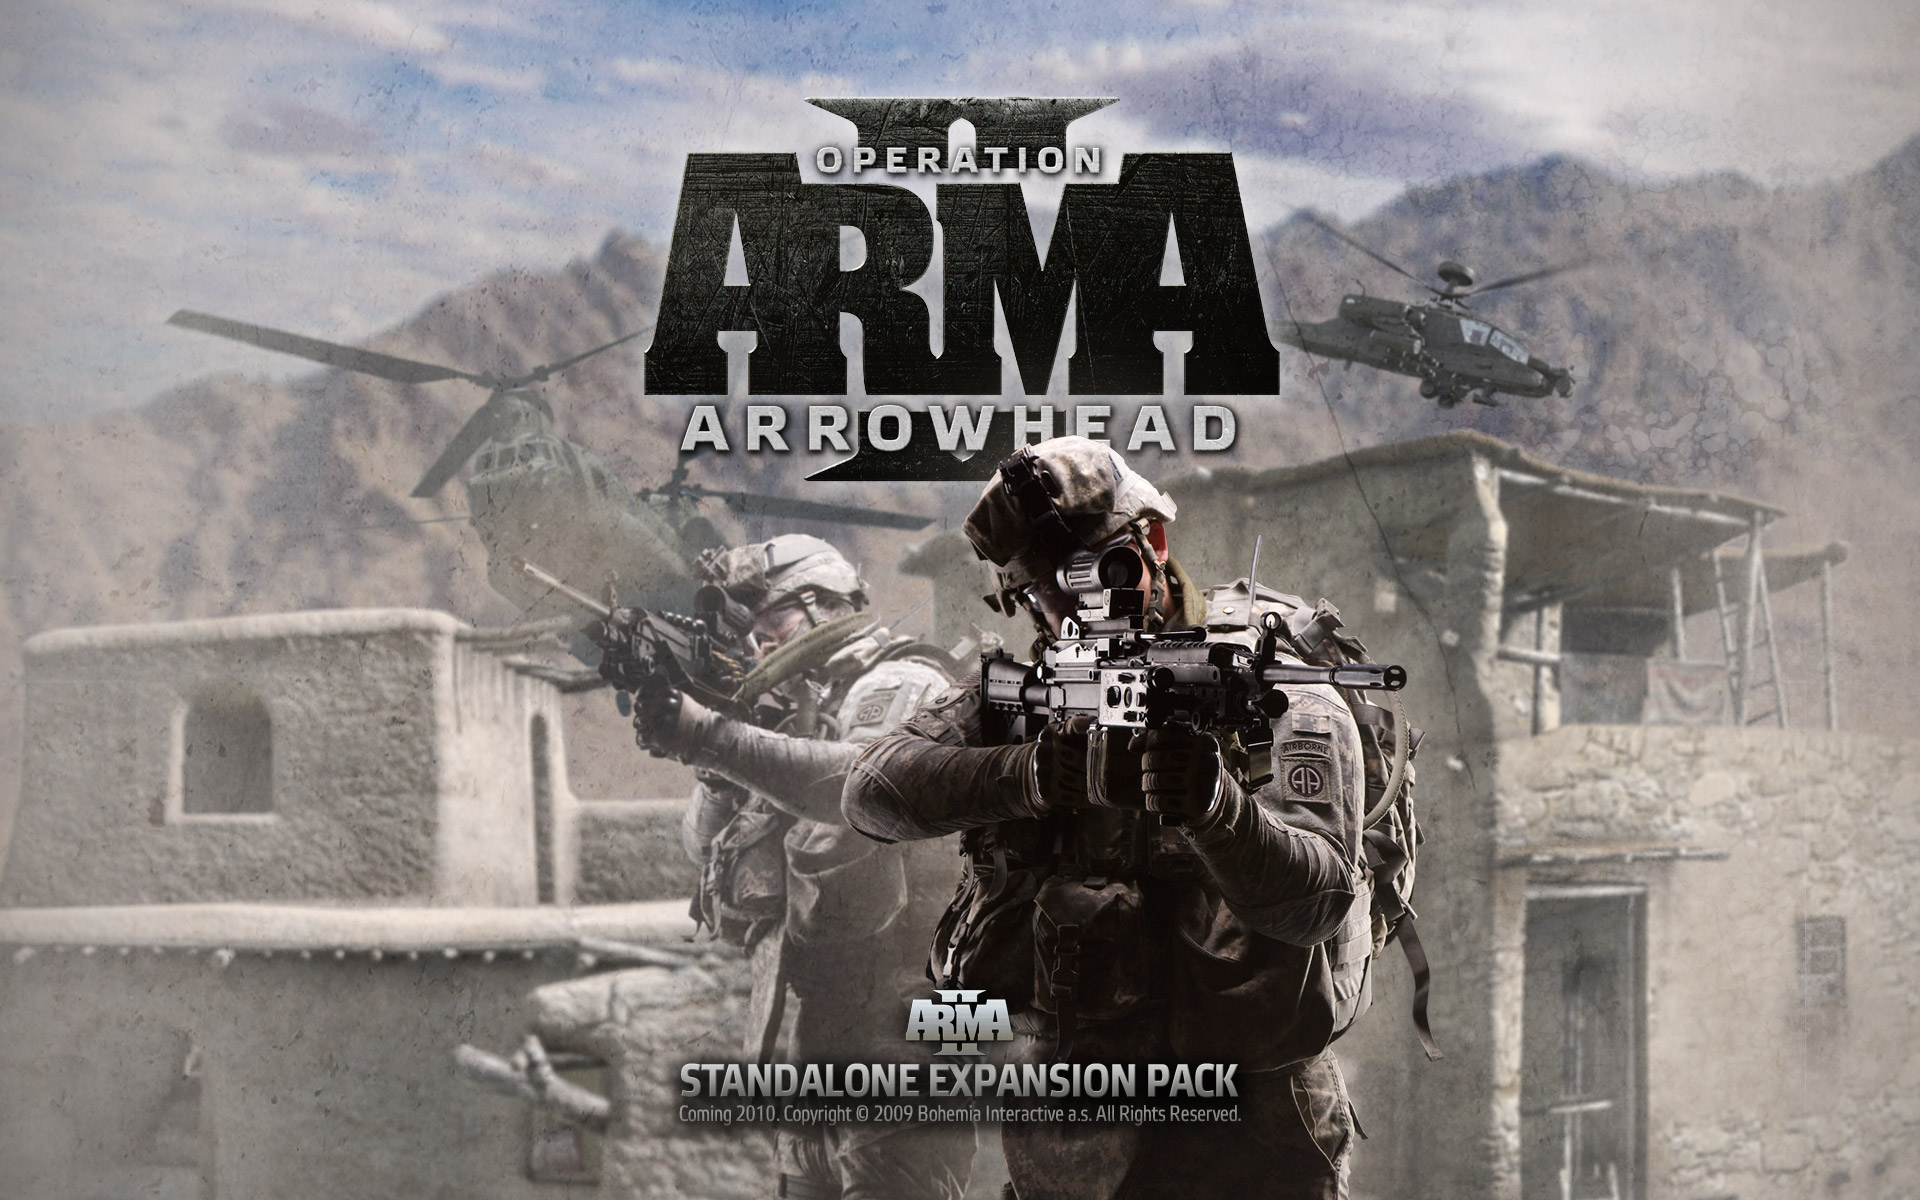 ARMA 2 + ARMA 2 Operation Arrowhead + DayZ